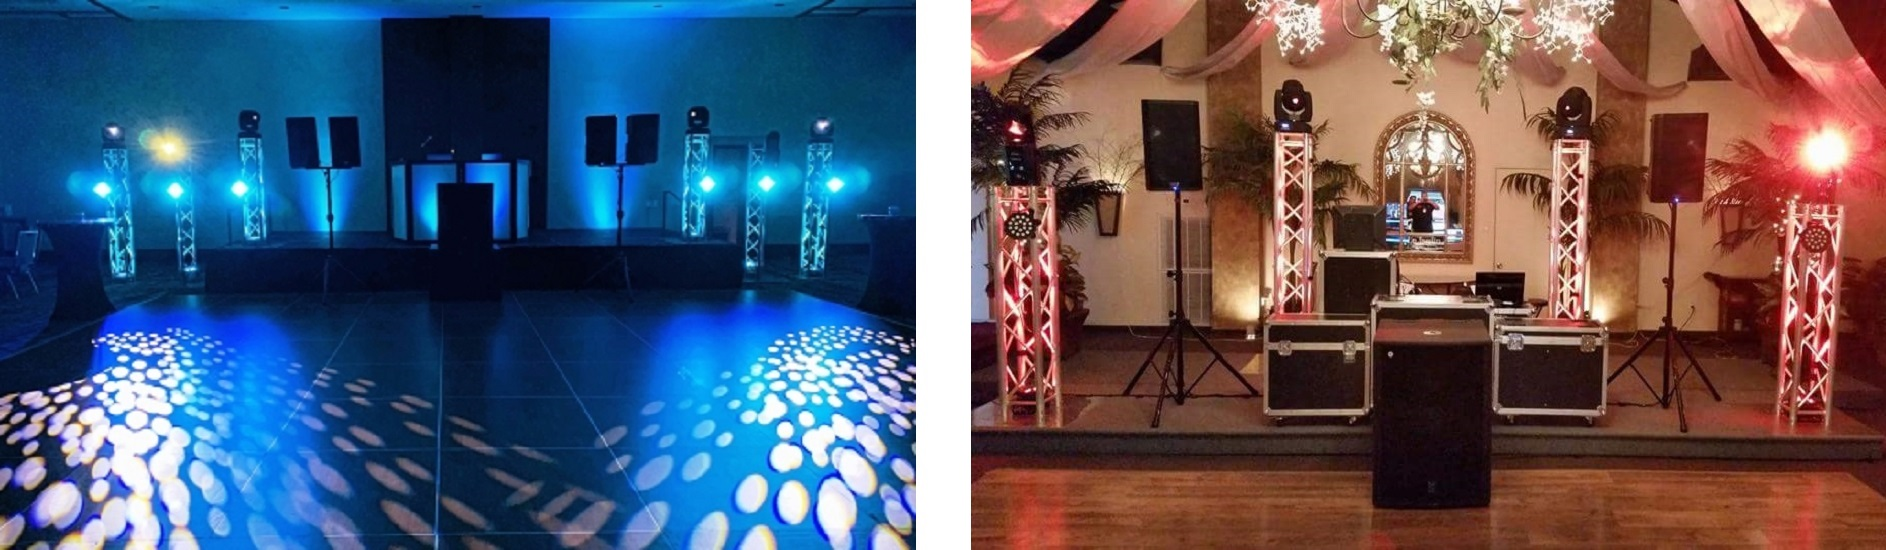 Dance Floor Lighting, Club Lighting, Moving Heads, Scanners, Spot Lighting, Light Floods for a Houston Wedding, Quinceañera, Sweet 16, Social Event, Event, Prom, Homecoming, School Dance